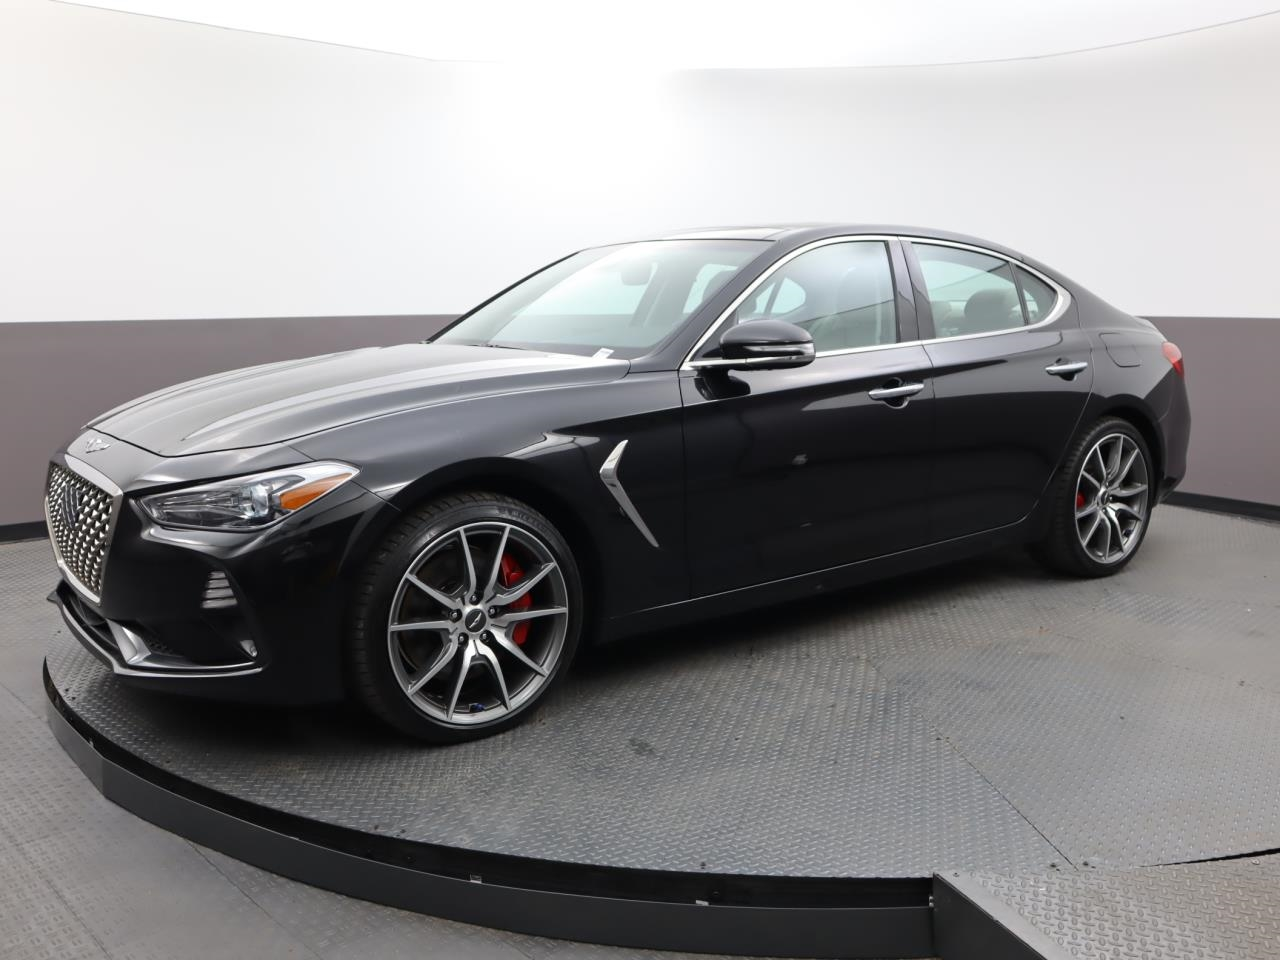 Used GENESIS G70 2019 MIAMI 3.3T ADVANCED